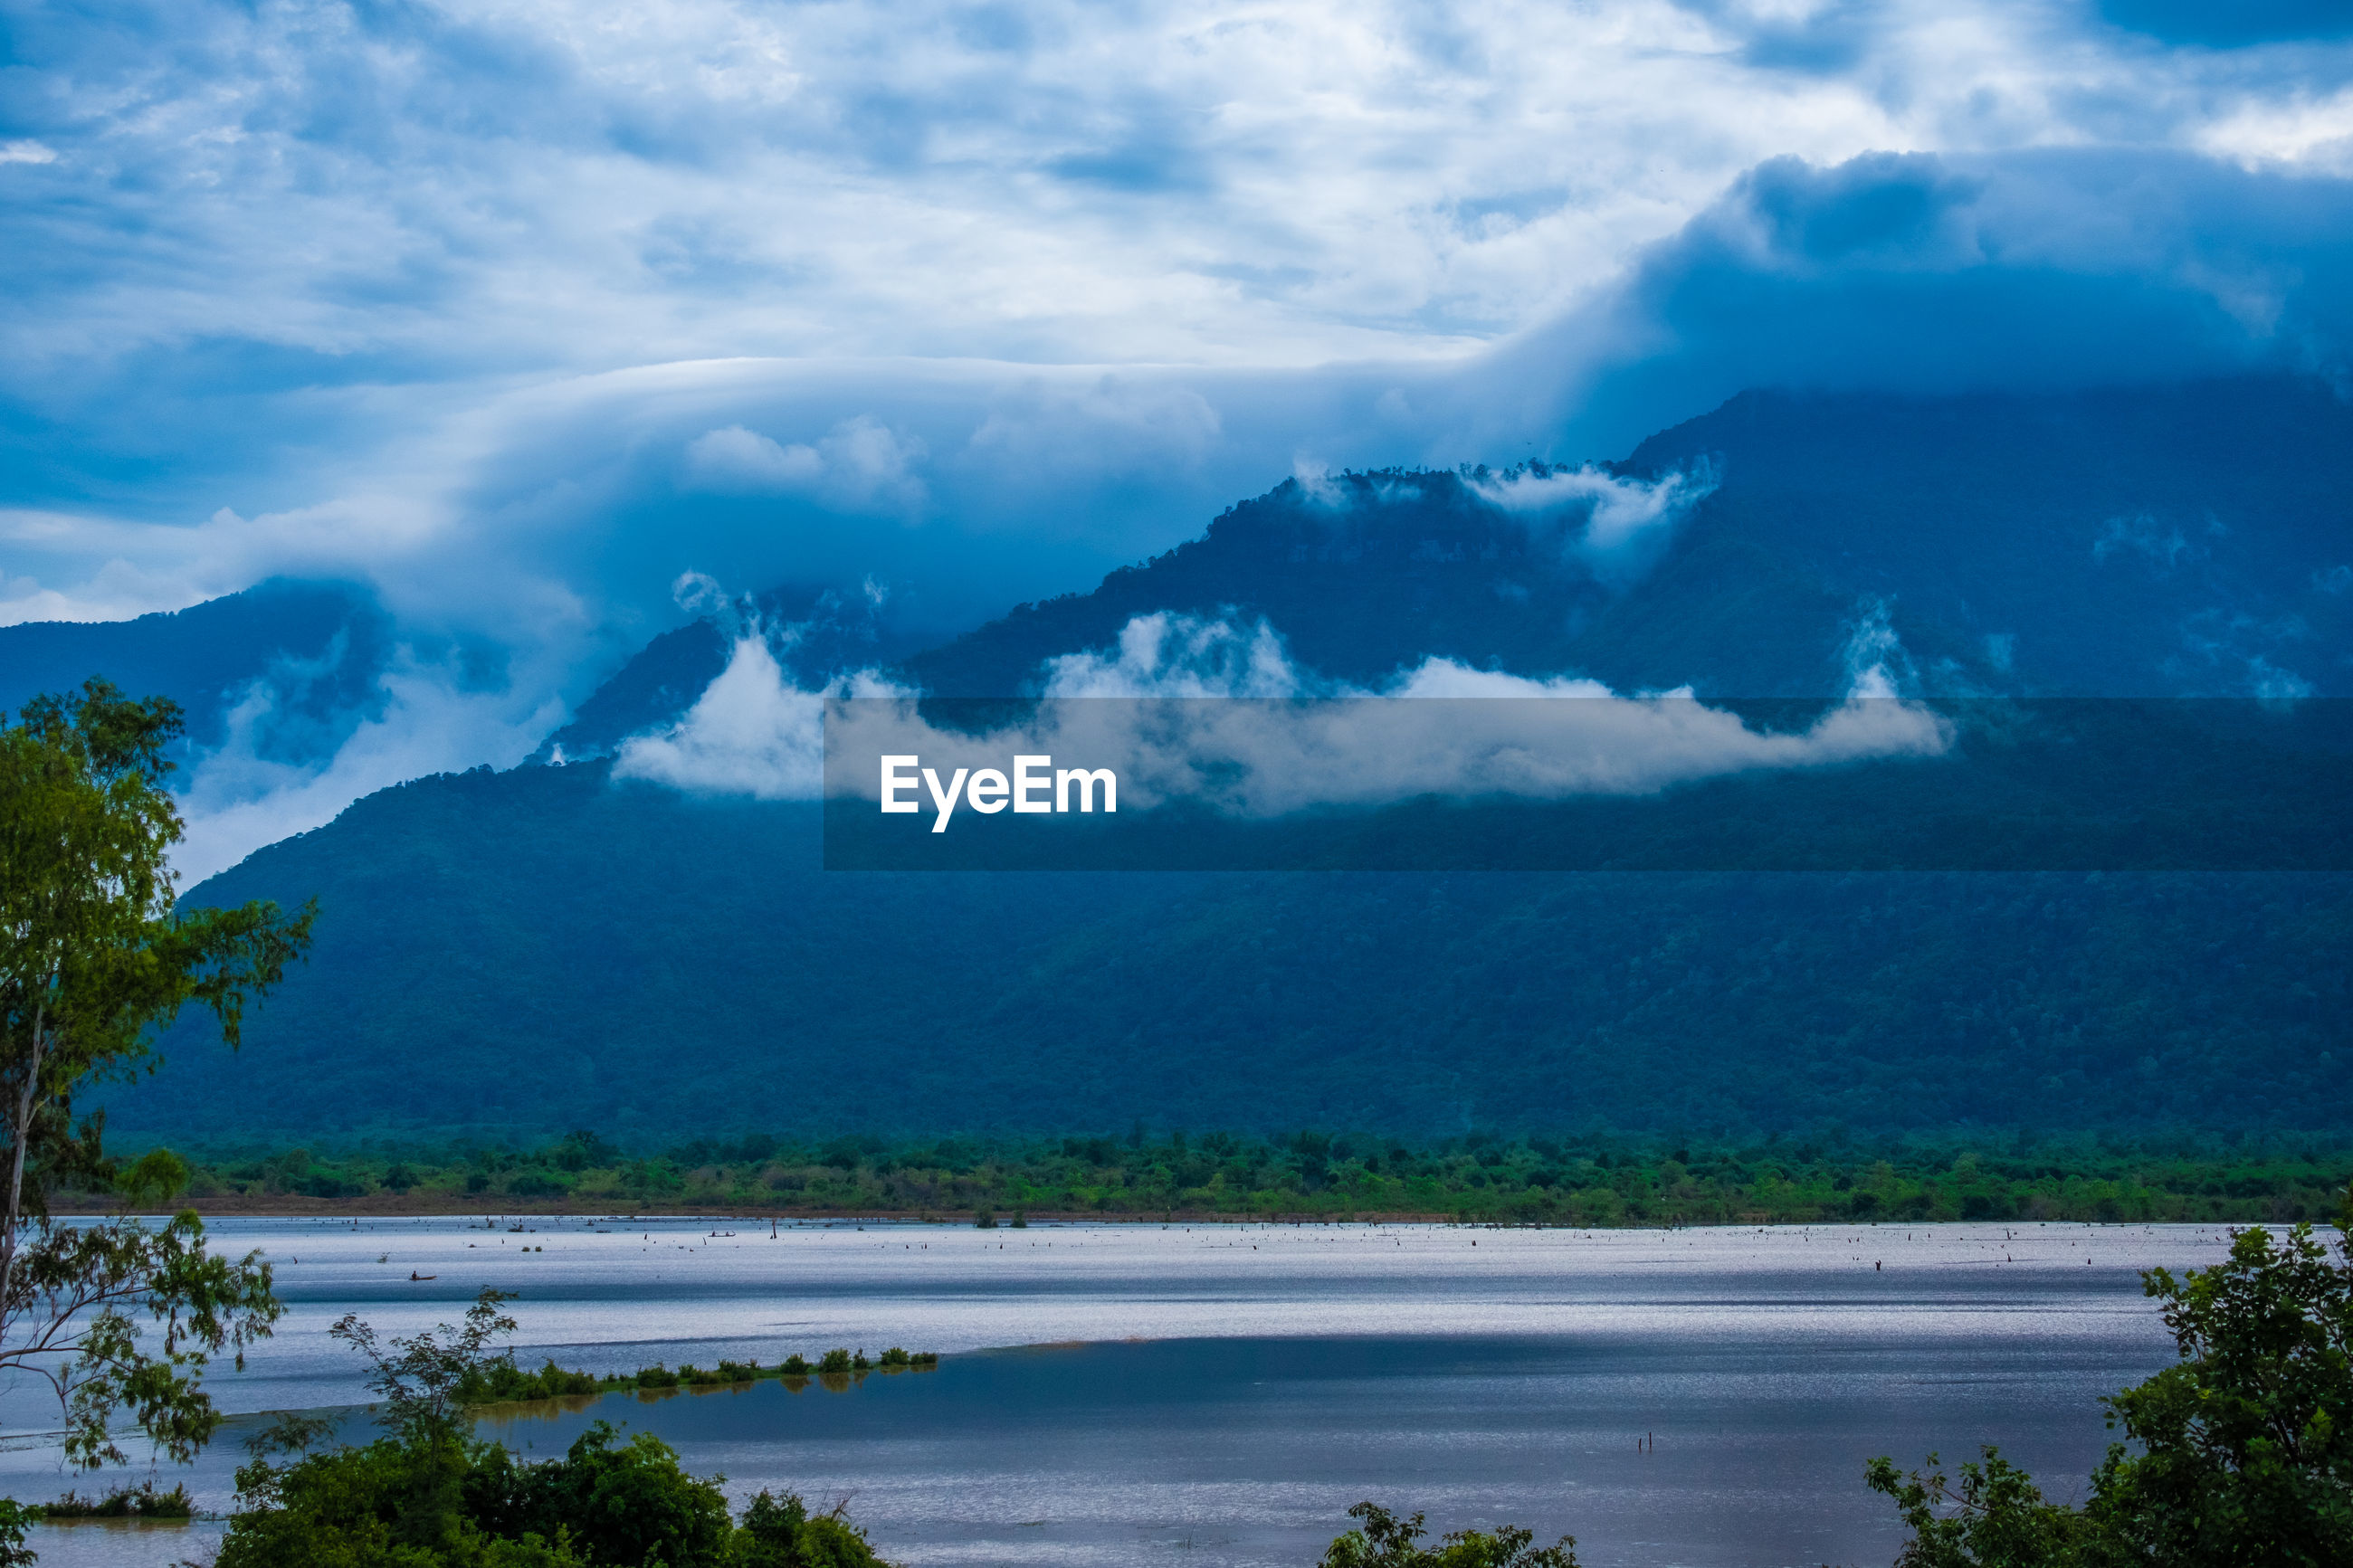 SCENIC VIEW OF MOUNTAINS AND CLOUDS